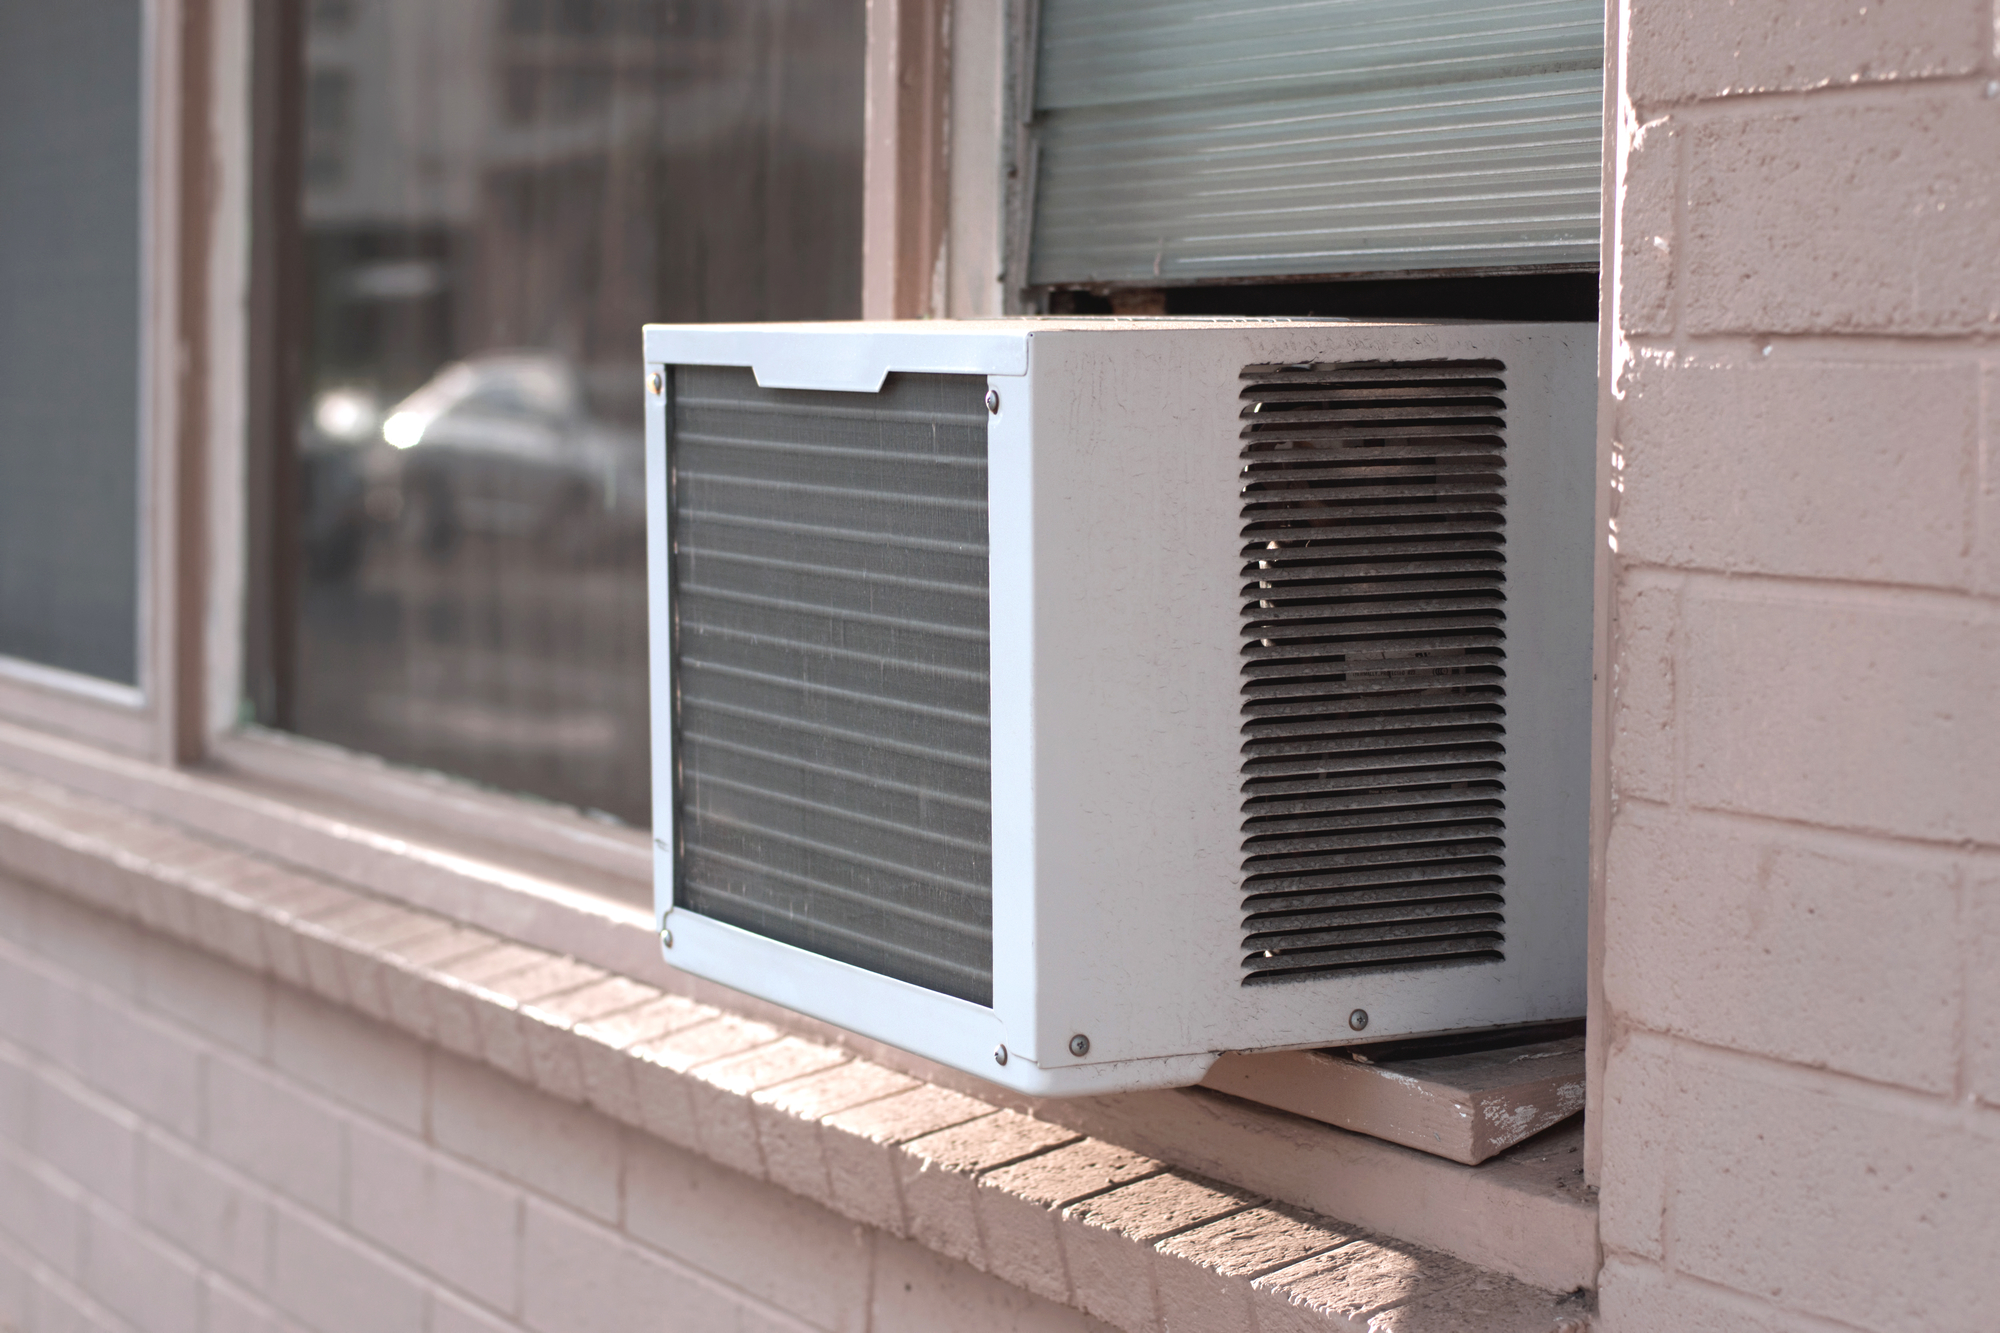 How to Choose Window Air Conditioner For Bedroom